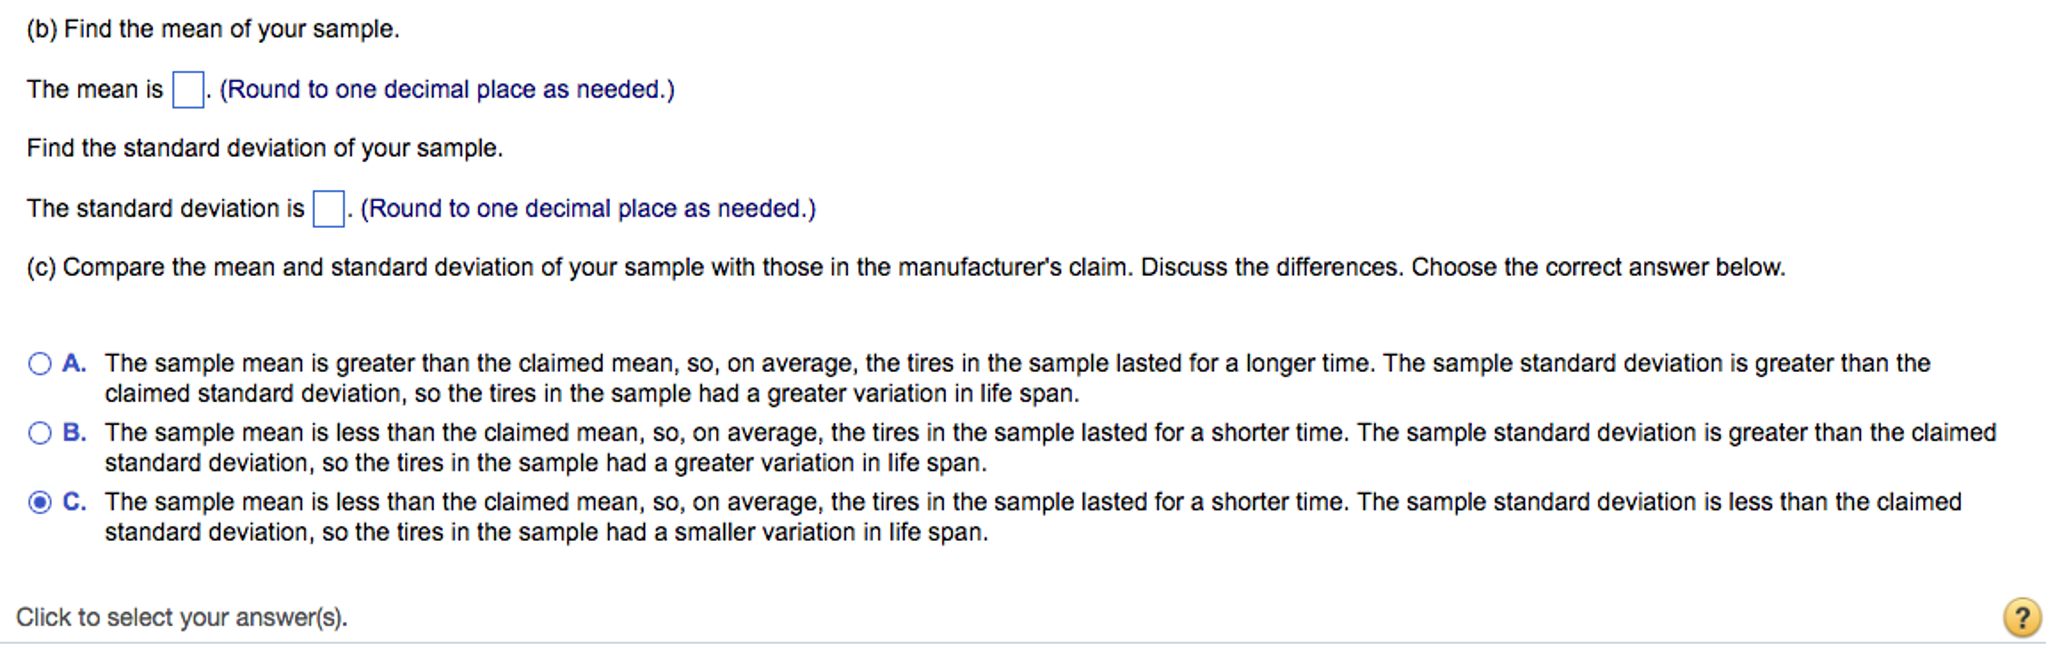 Less Than The Claimed Standard? Deviation, So The Tires In The Sample Had A  Smallersmaller Variation In Life Span